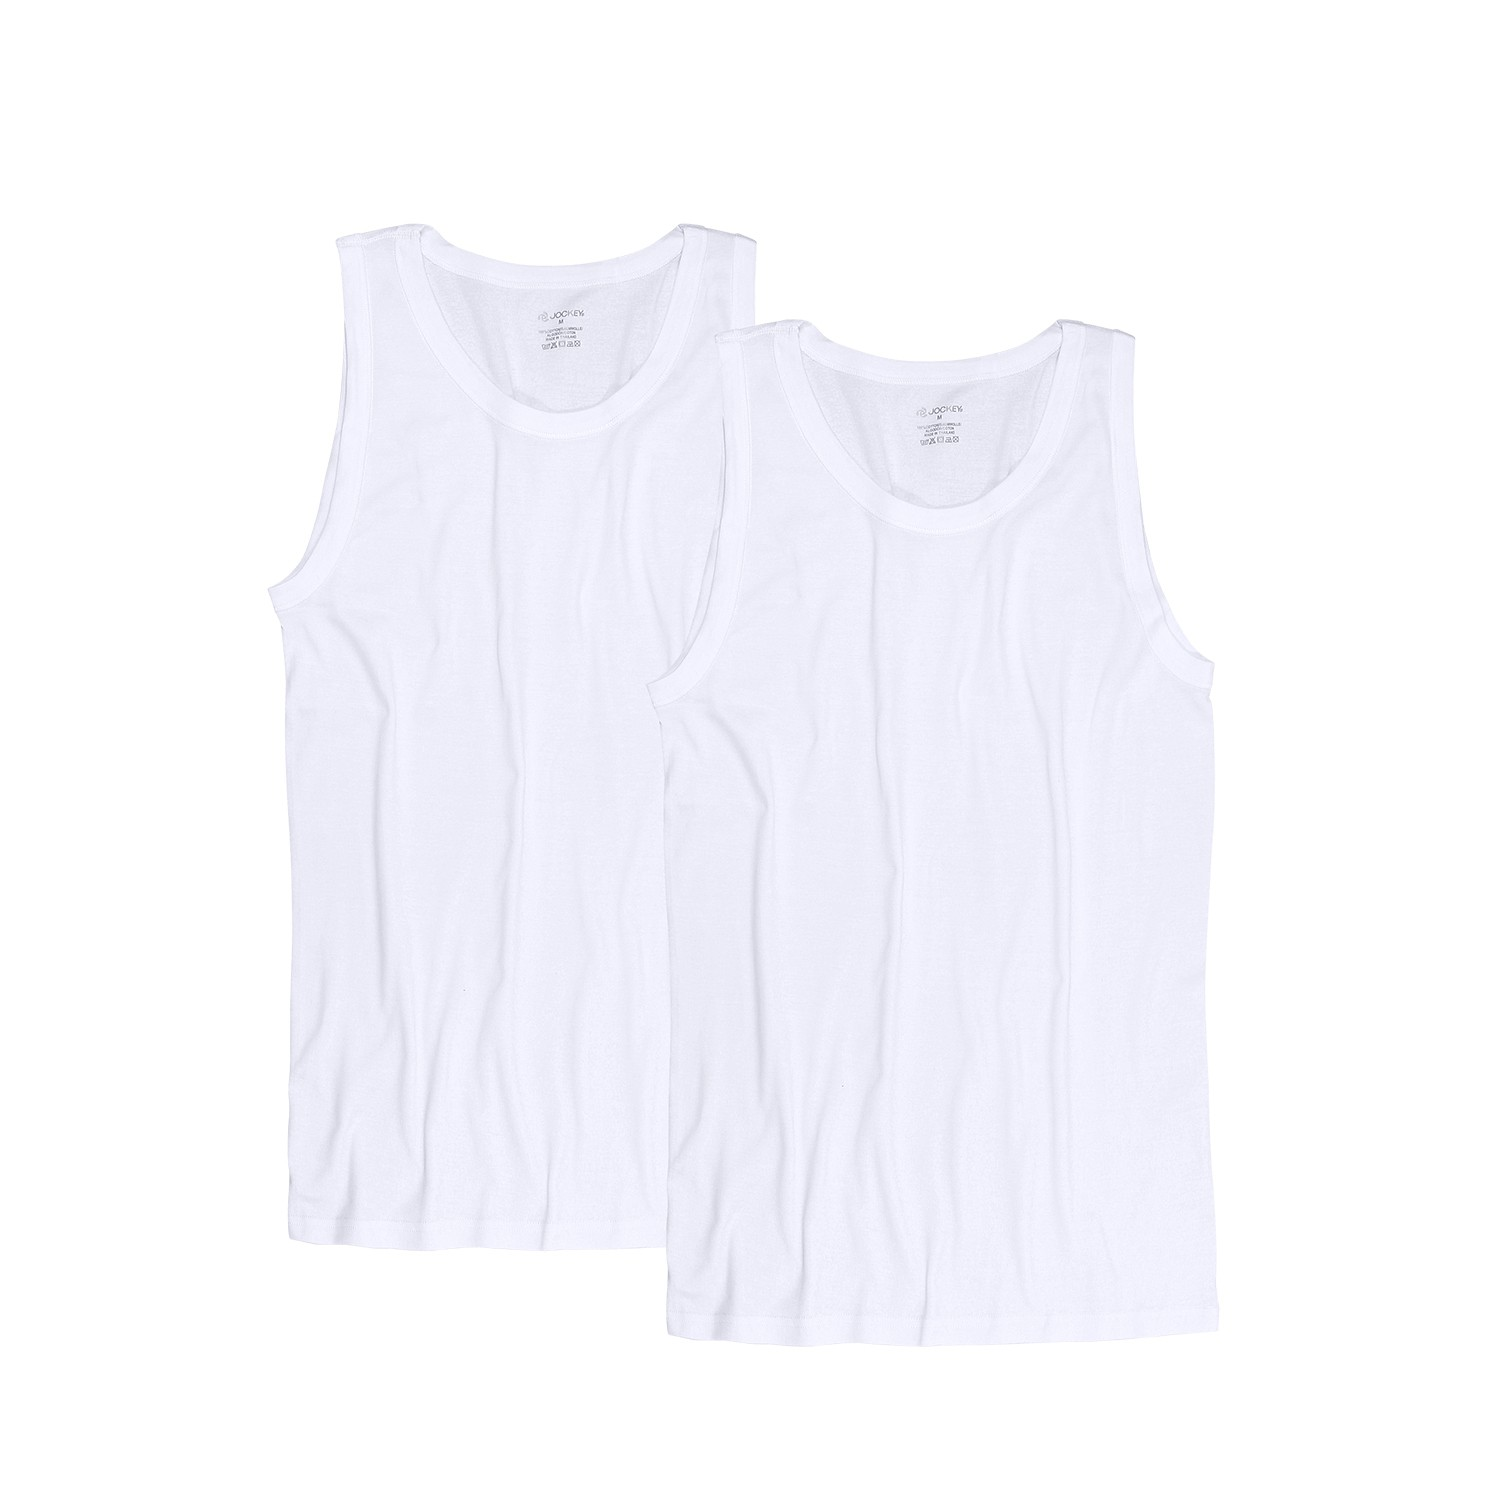 Detail Image to White sleeveless undershirts double pack from Jockey in oversize until 6XL